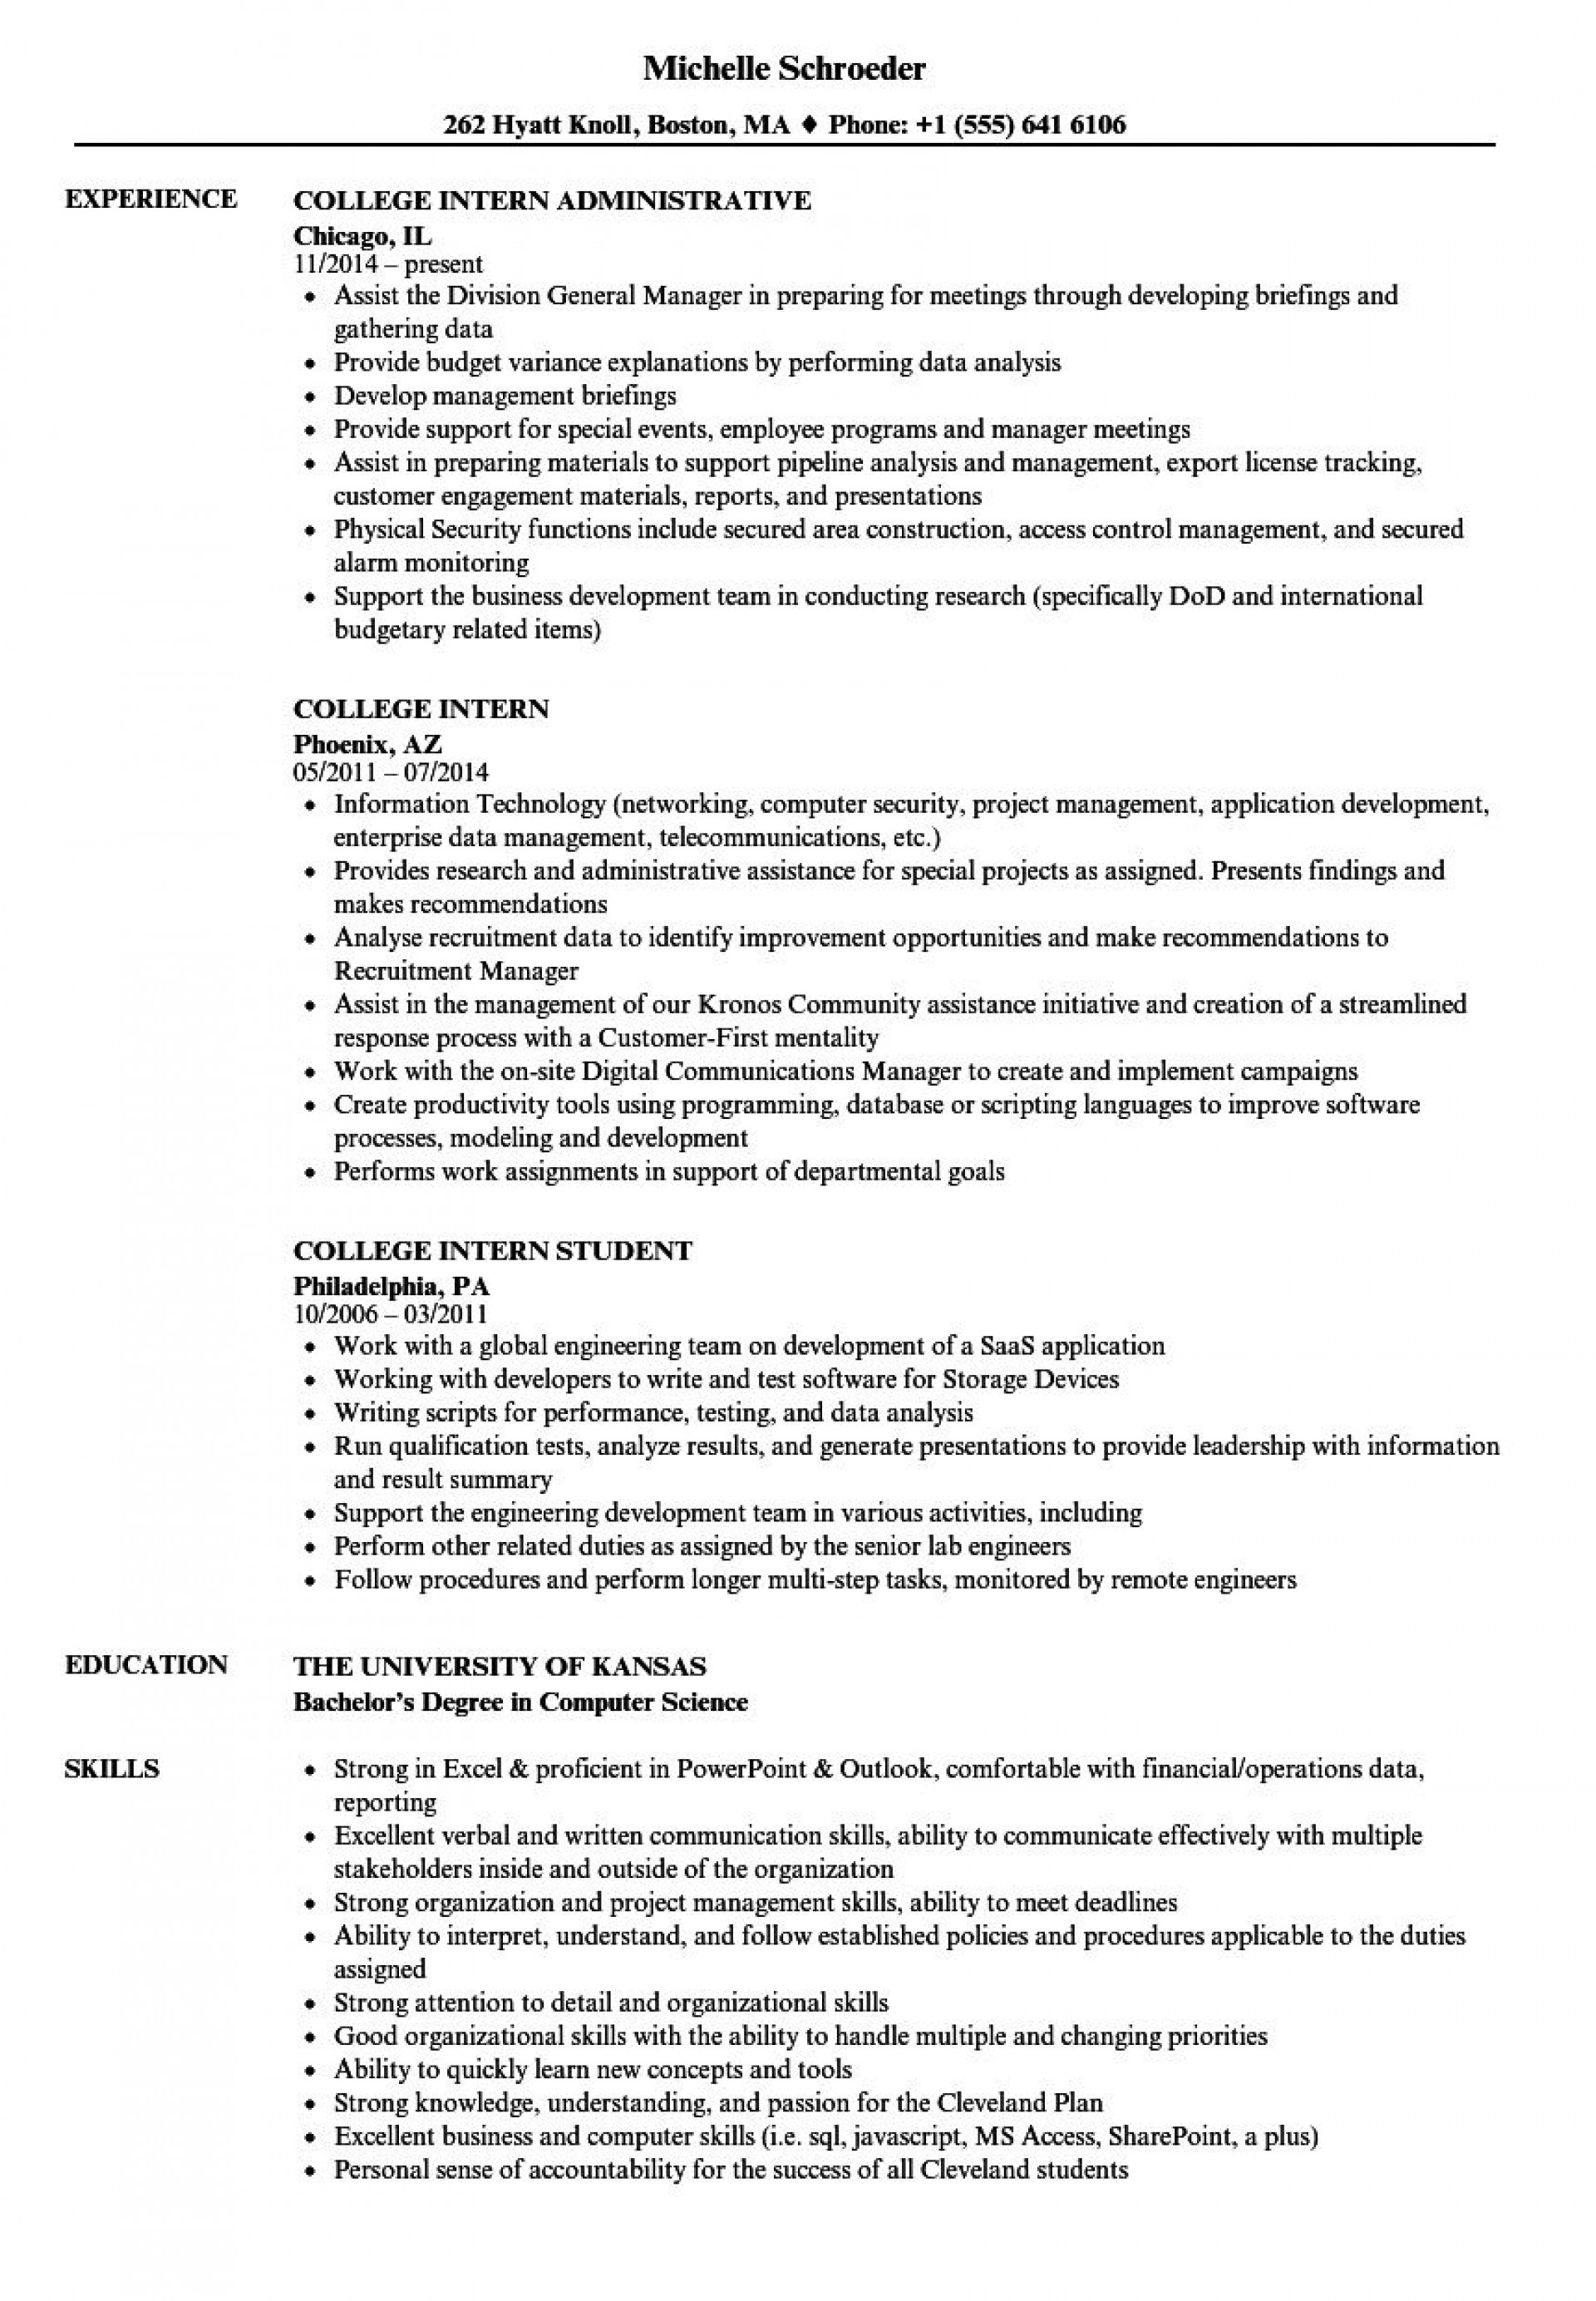 004 Outstanding College Internship Resume Template Example  Student Job For Download1920